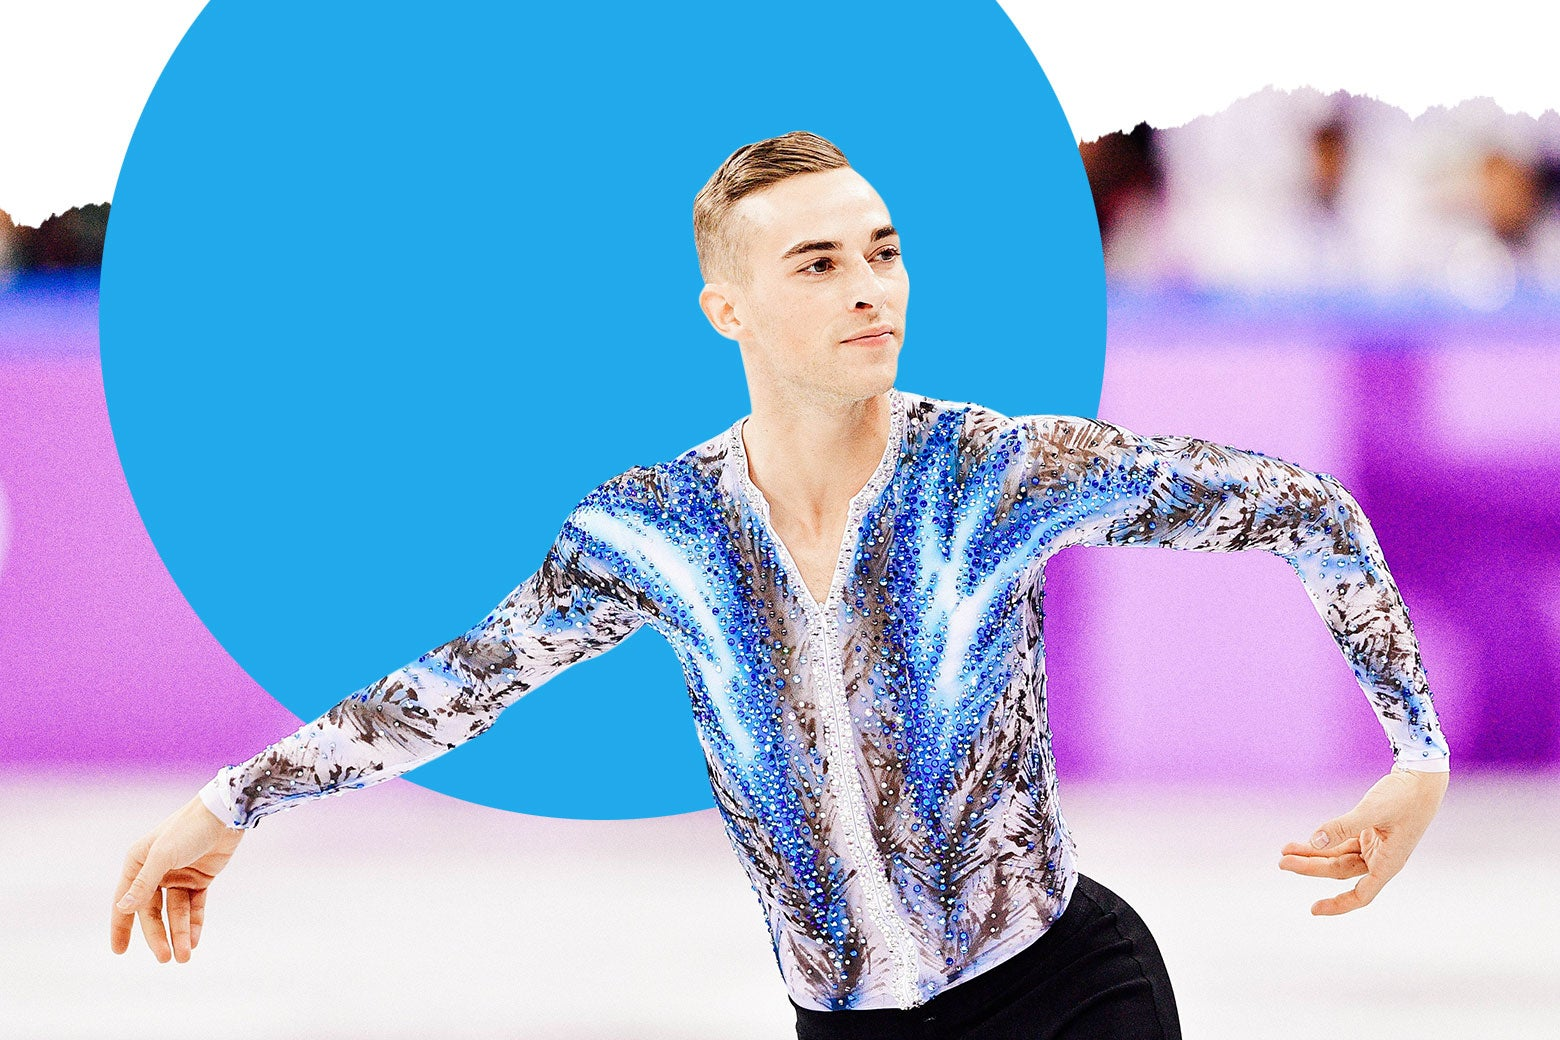 Adam Rippon skating in a blue, white, and gray glittery top.